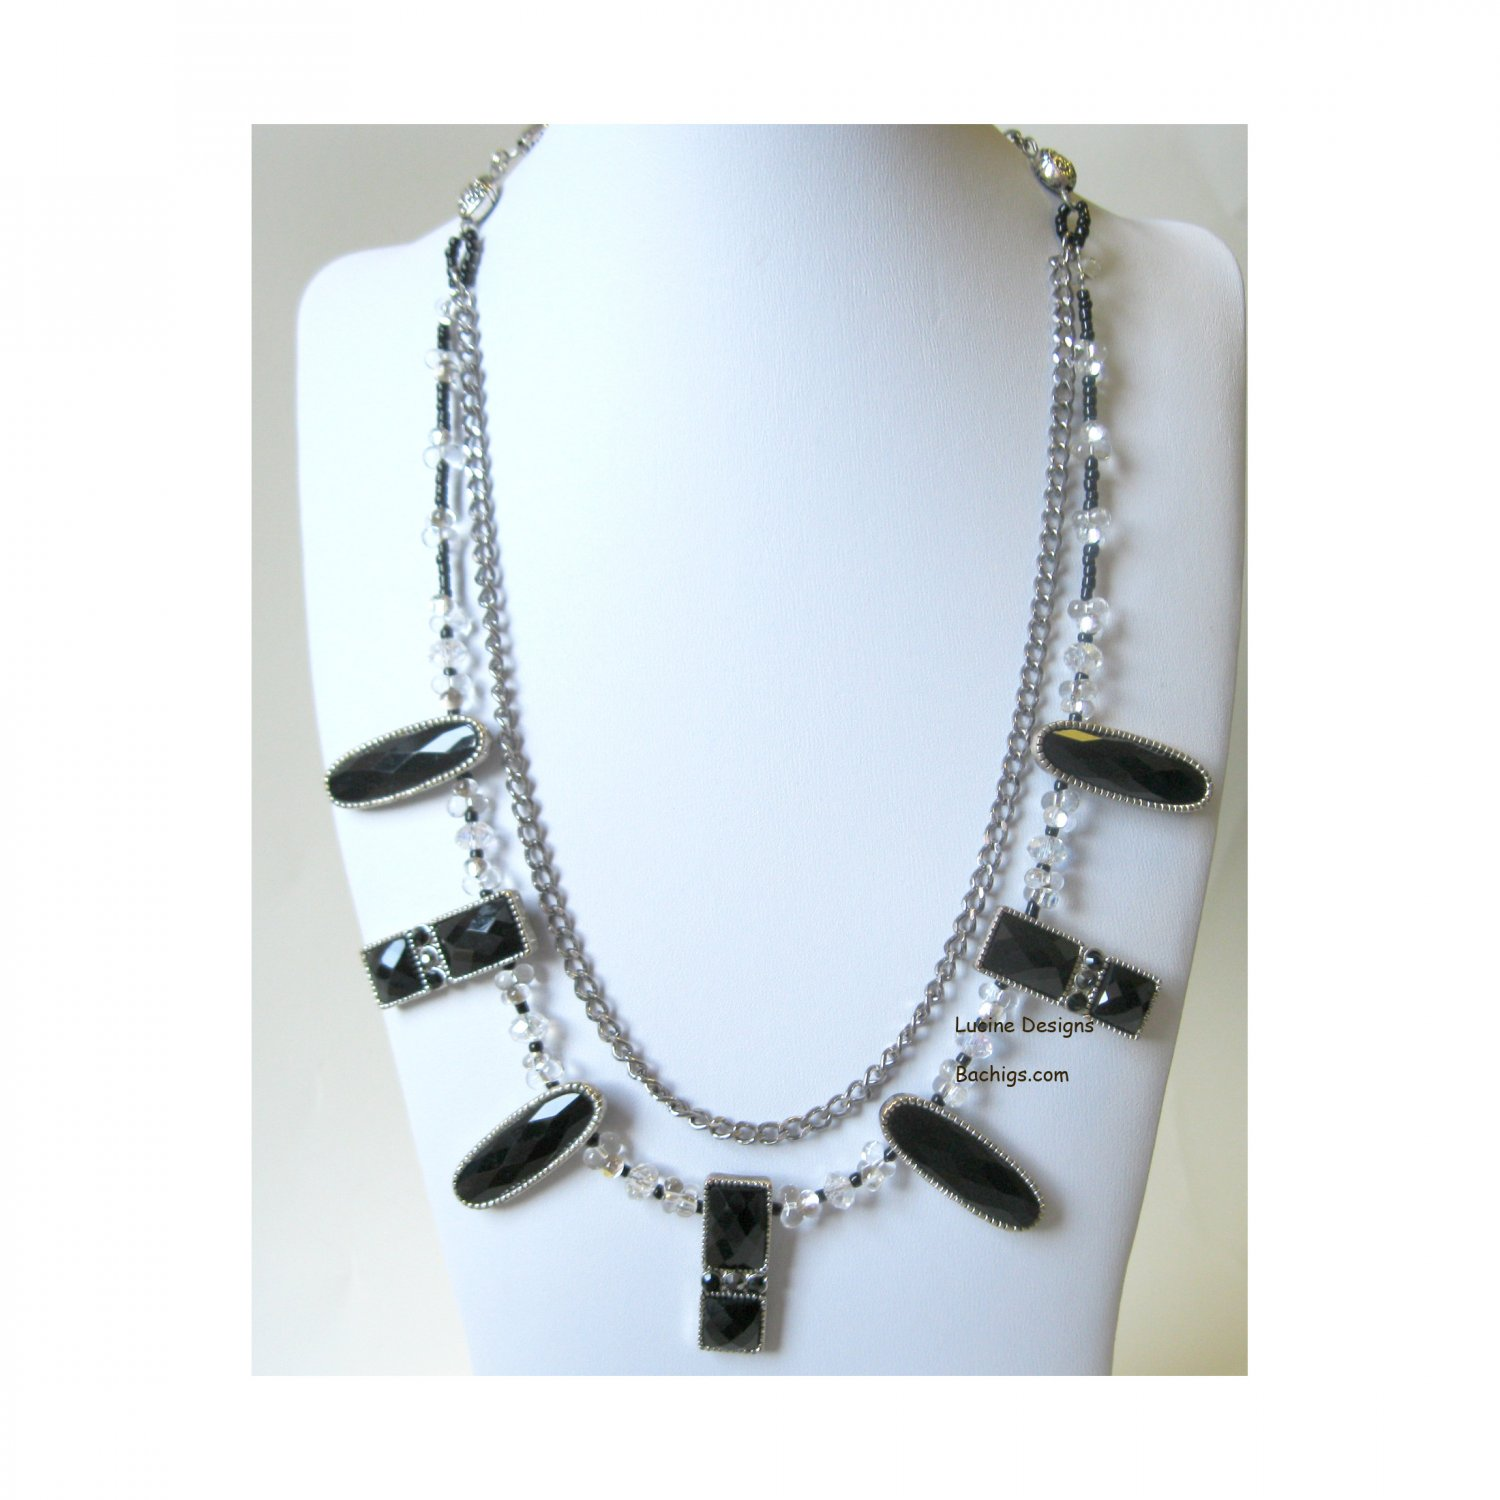 OOAK black and silver chain layered fashion necklace Lucine Designs {3086N}